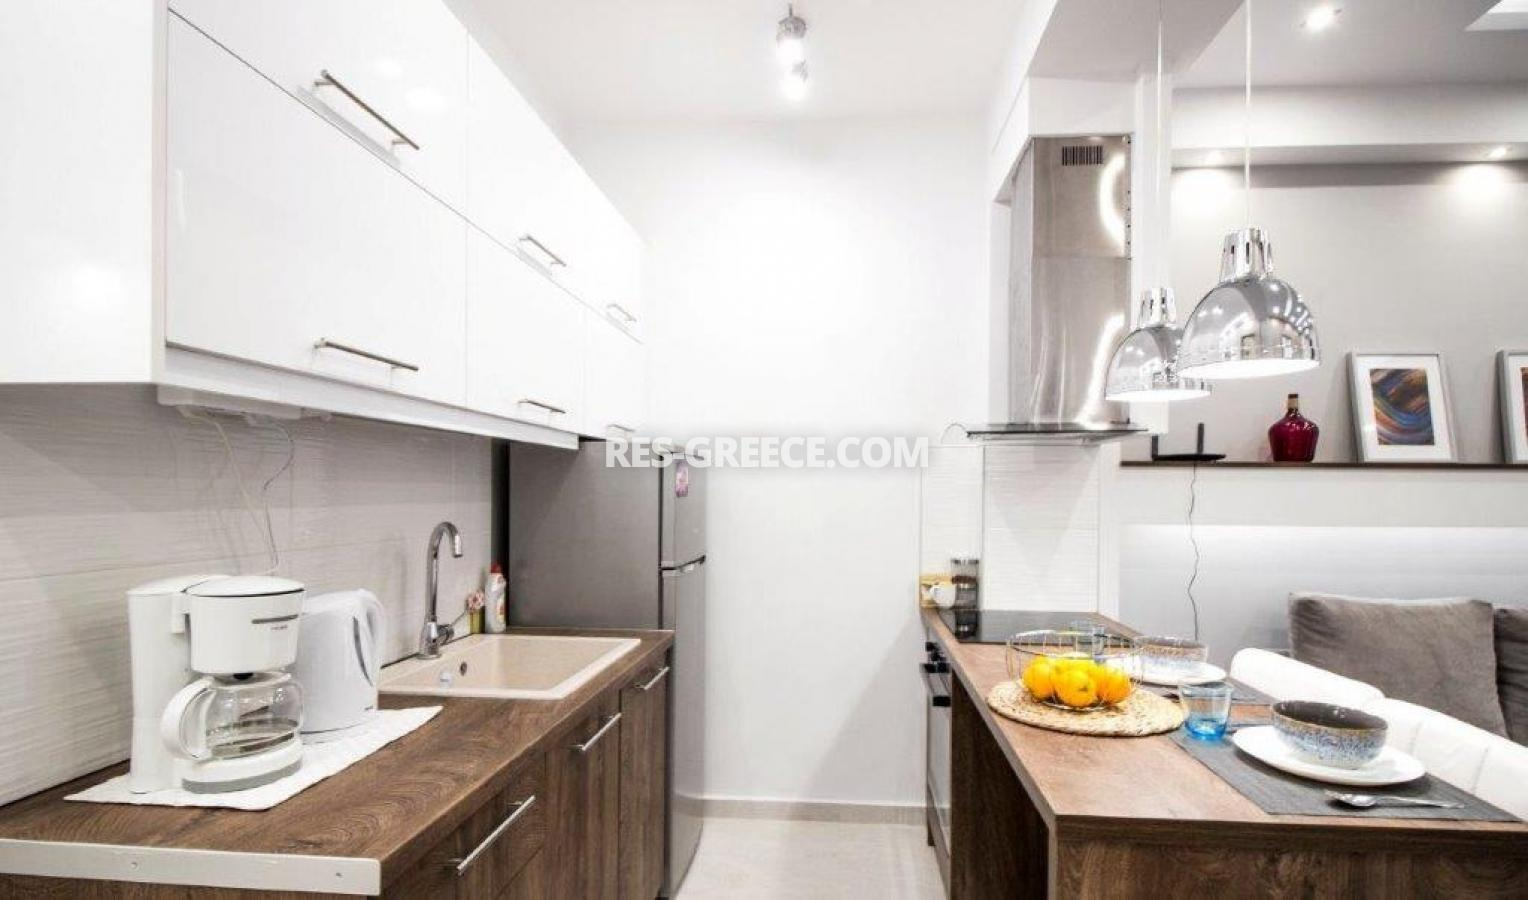 Germanou, Central Macedonia, Greece - apartments in Thessaloniki center for residence or long-term rent - Photo 11